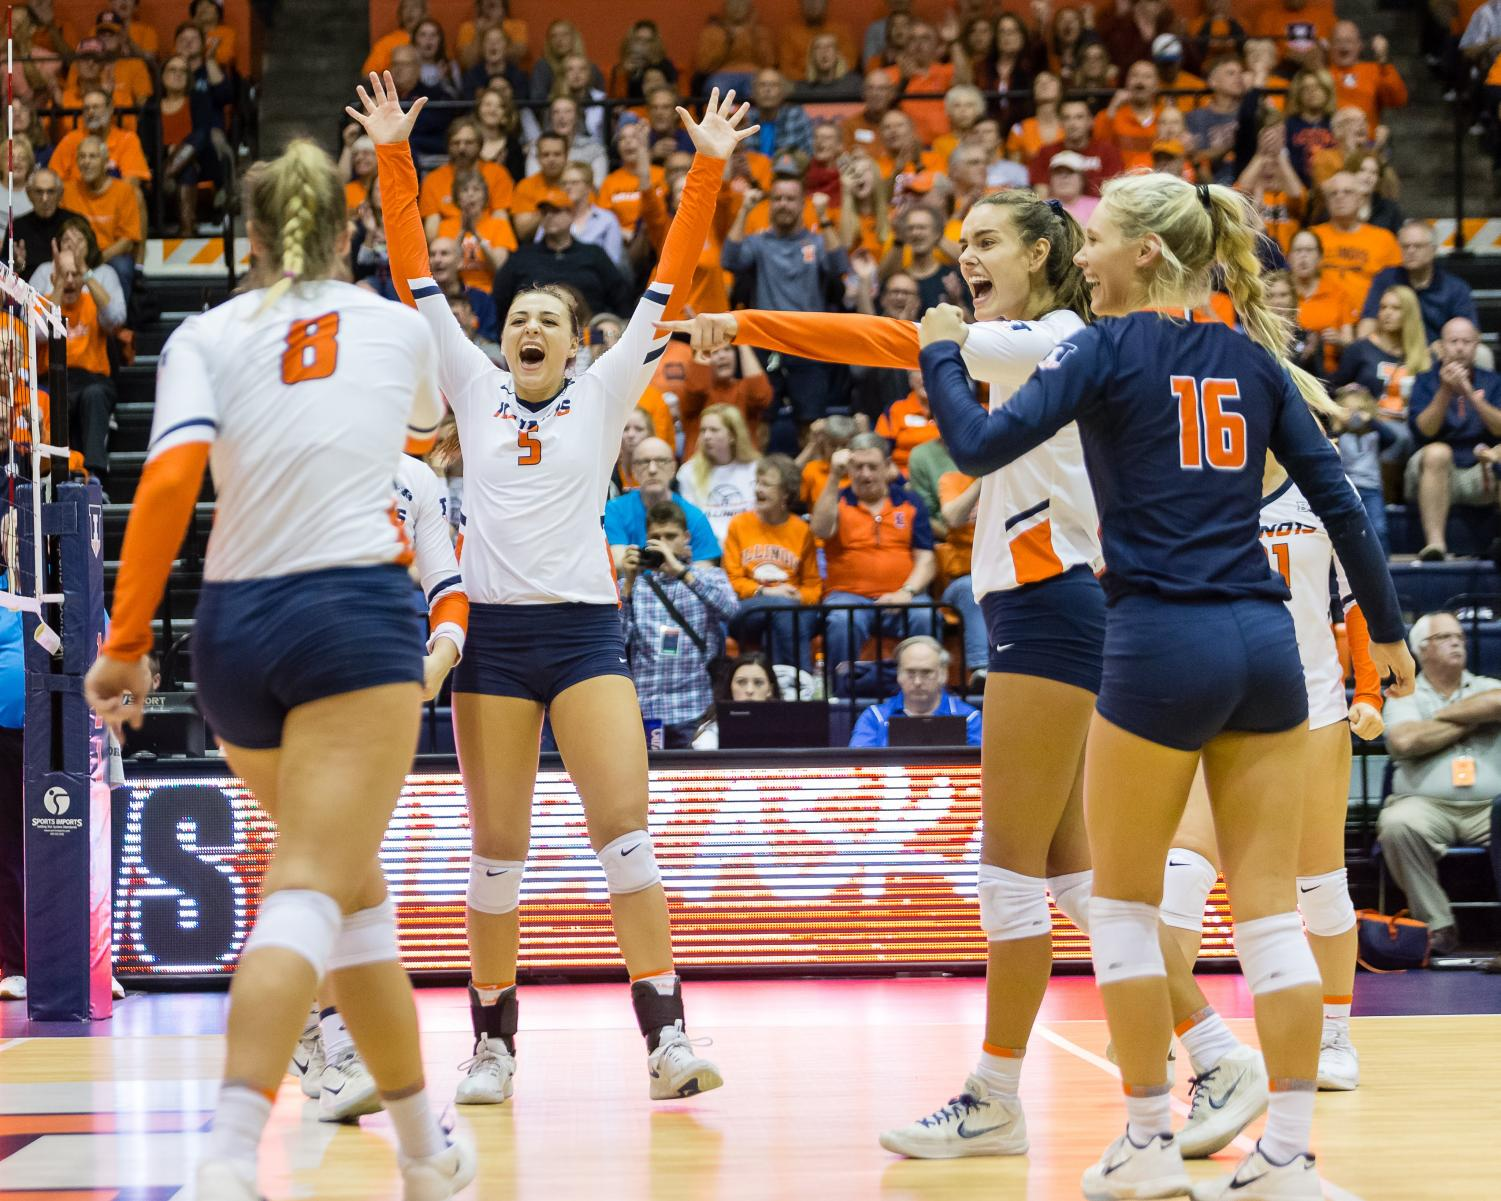 Illinois middle blocker Ali Bastianelli (5), outside hitter Jacqueline Quade (7) and defensive specialist Megan O'Brien (16) celebrate after outside hitter Beth Prince (8) scored a kill during the match against Nebraska at Huff Hall in on Sept. 29, 2018. The Illini lost 3-1.